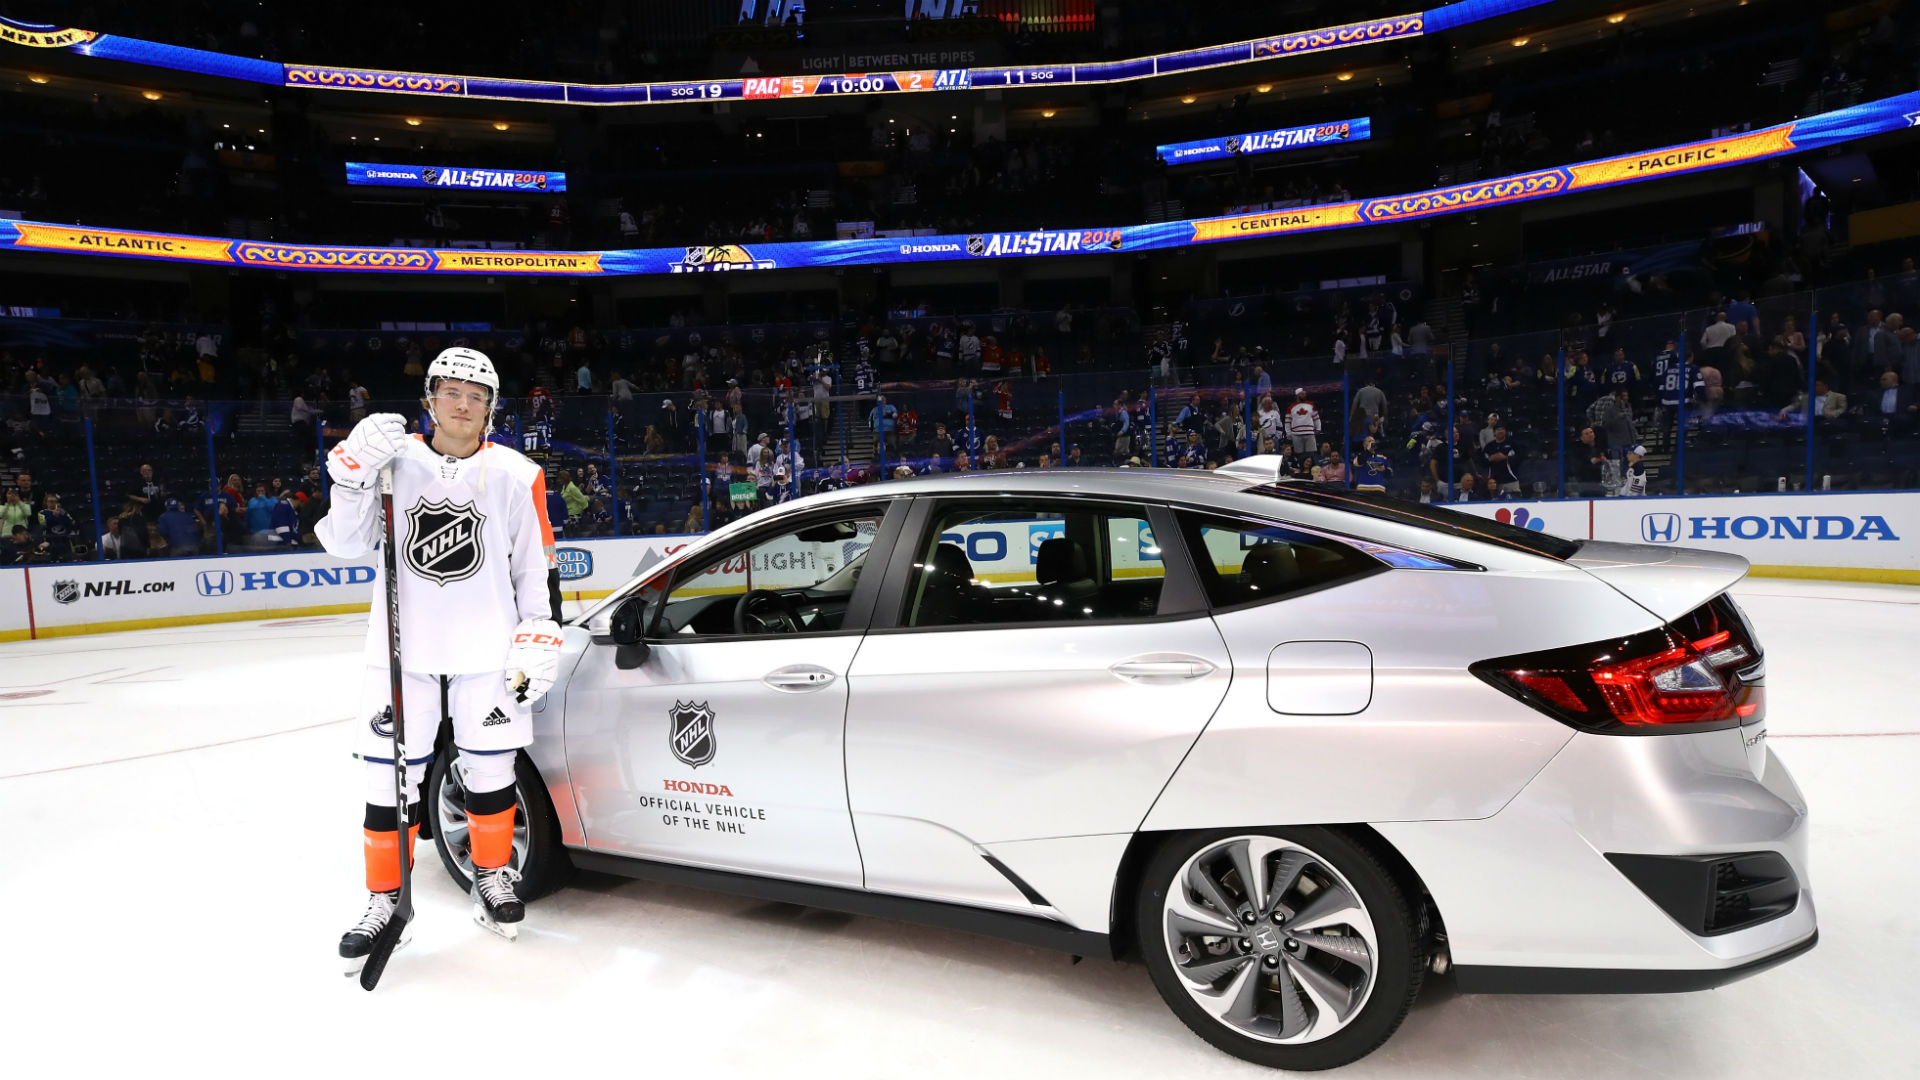 Lightning Shine at the All-Star Game